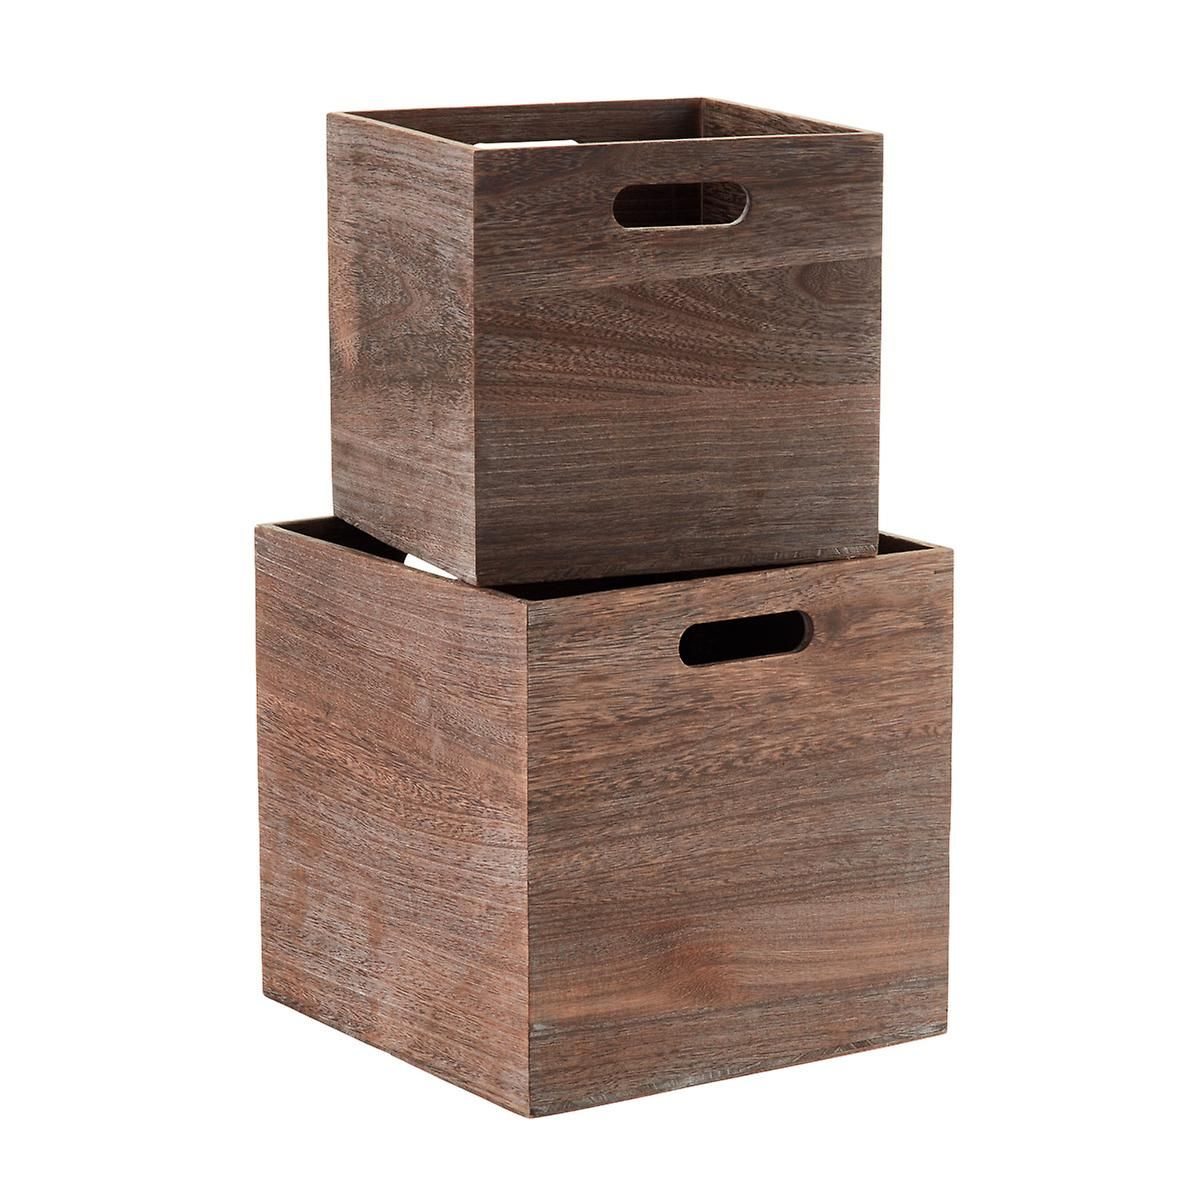 Feathergrain Wooden Storage Cubes With Handles Toy Storage Cubes Cube Storage Wooden Storage